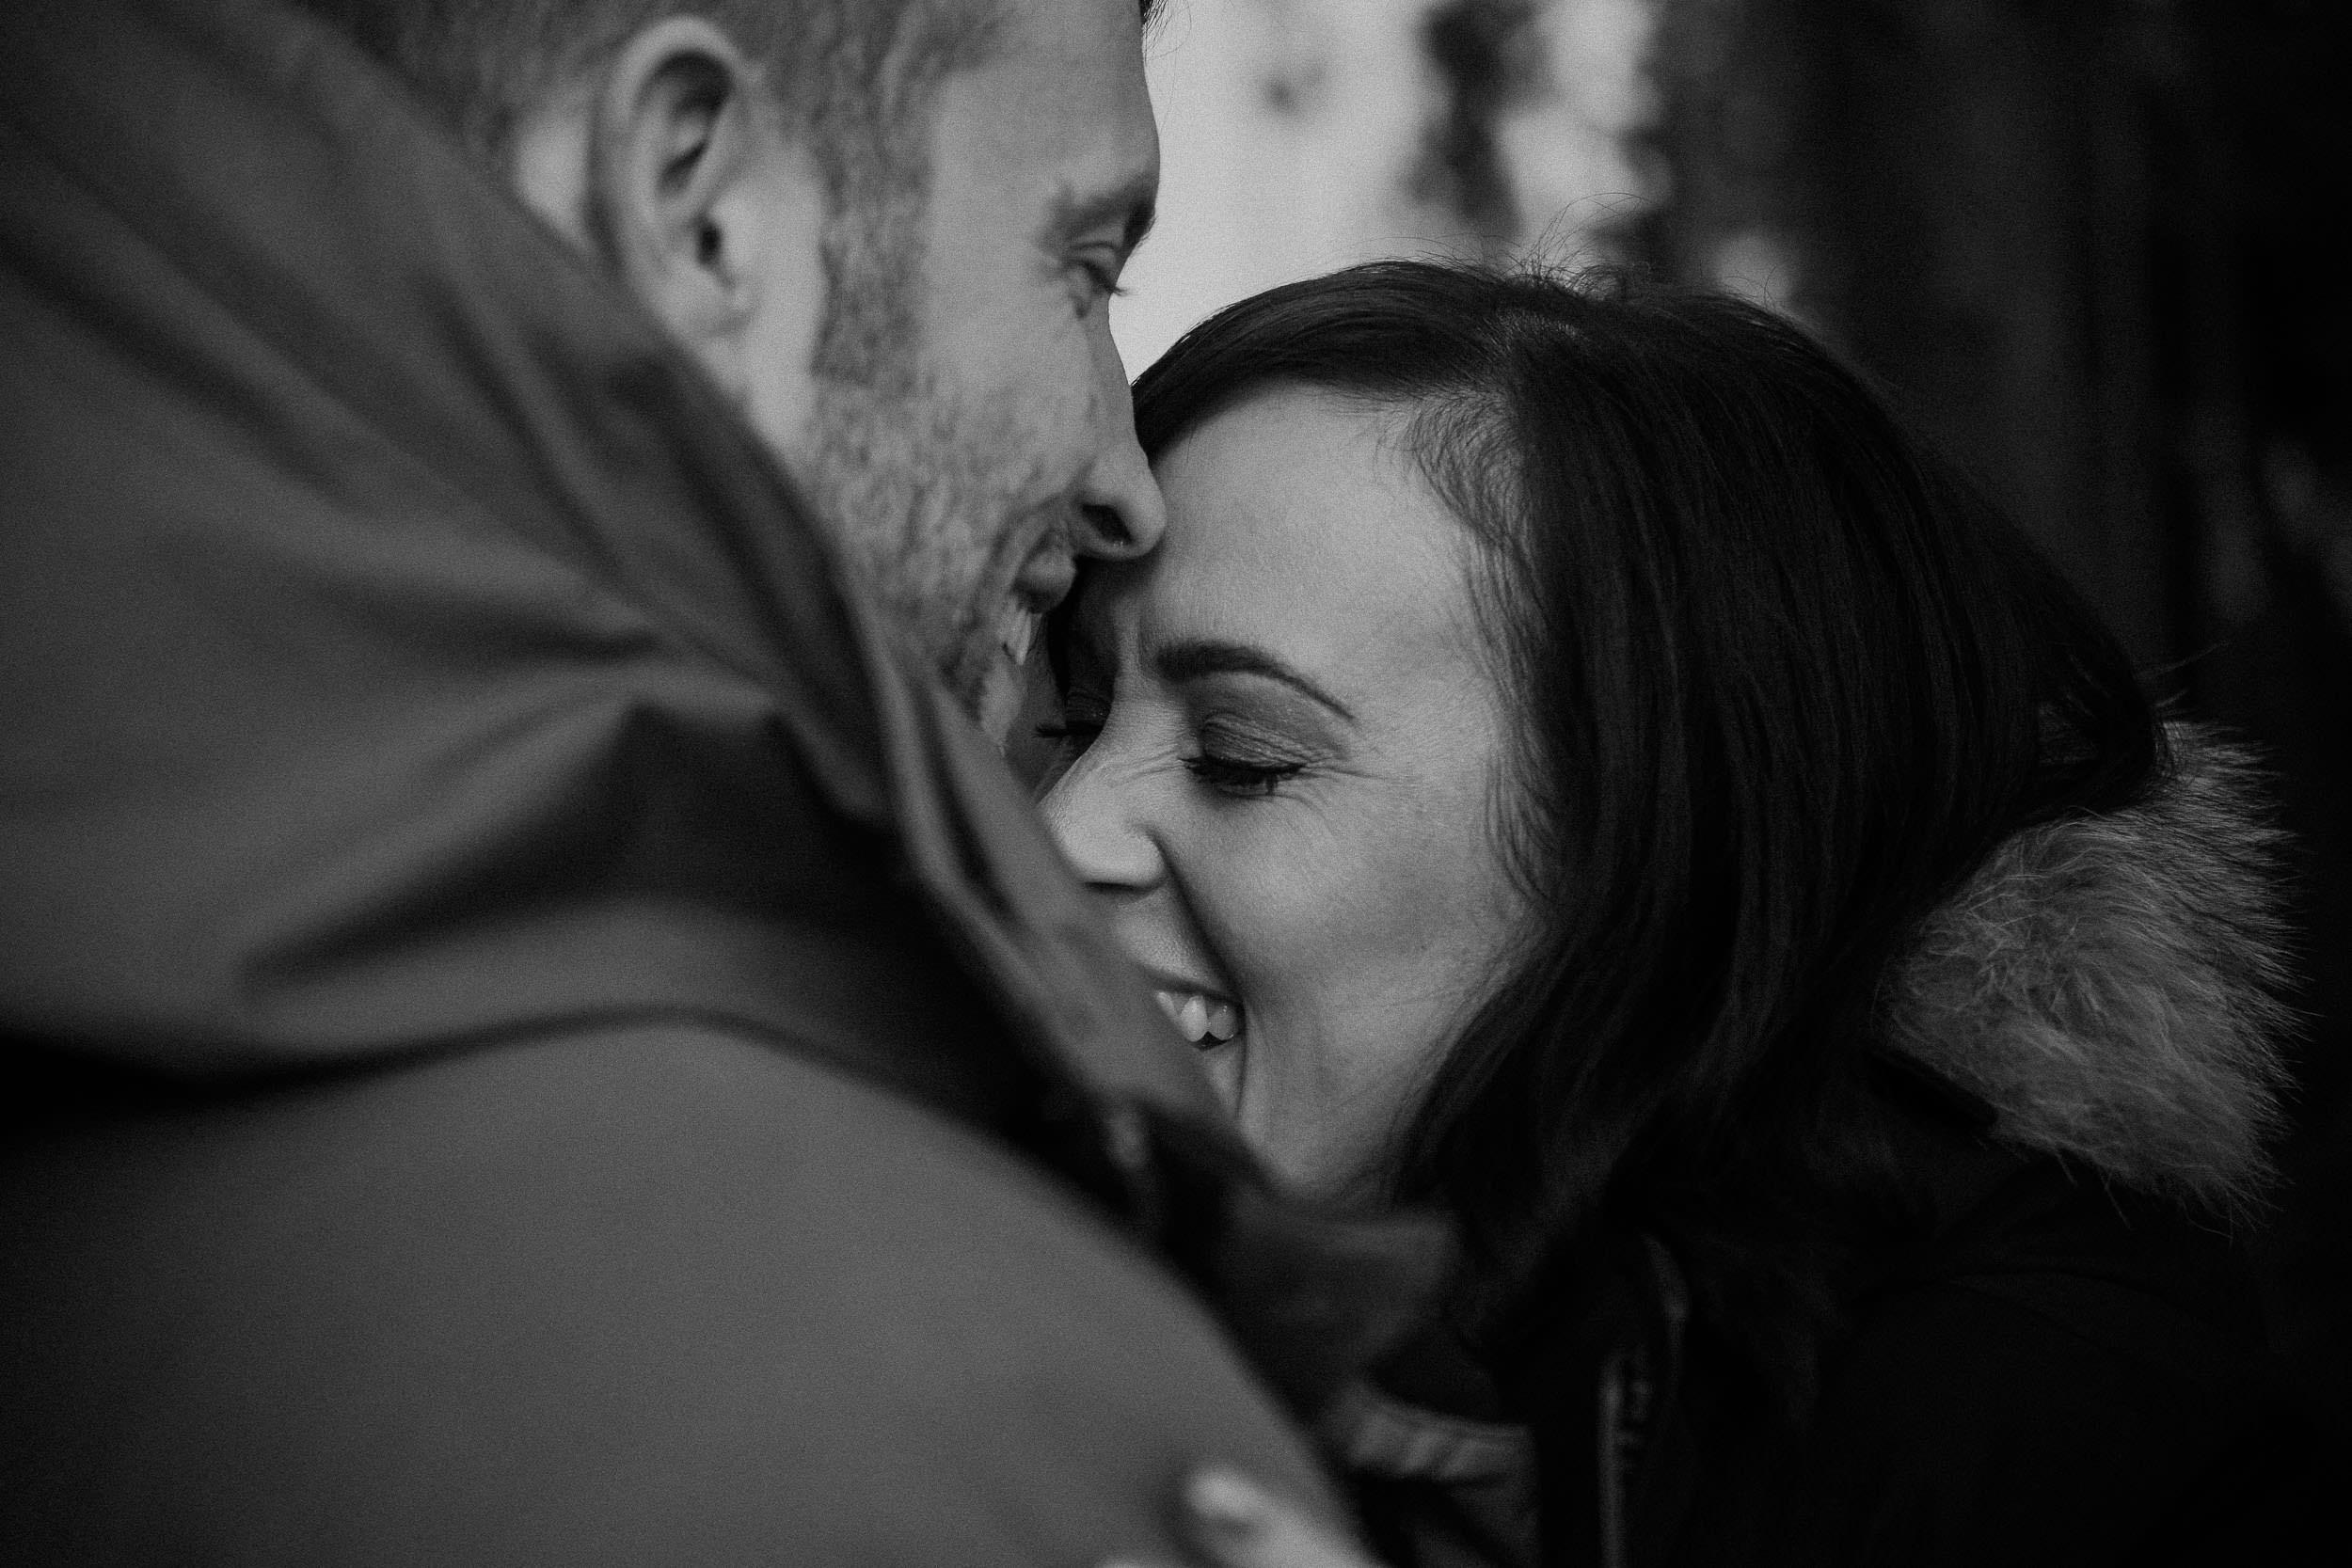 Black and white photo of couple embracing with the girl laughing